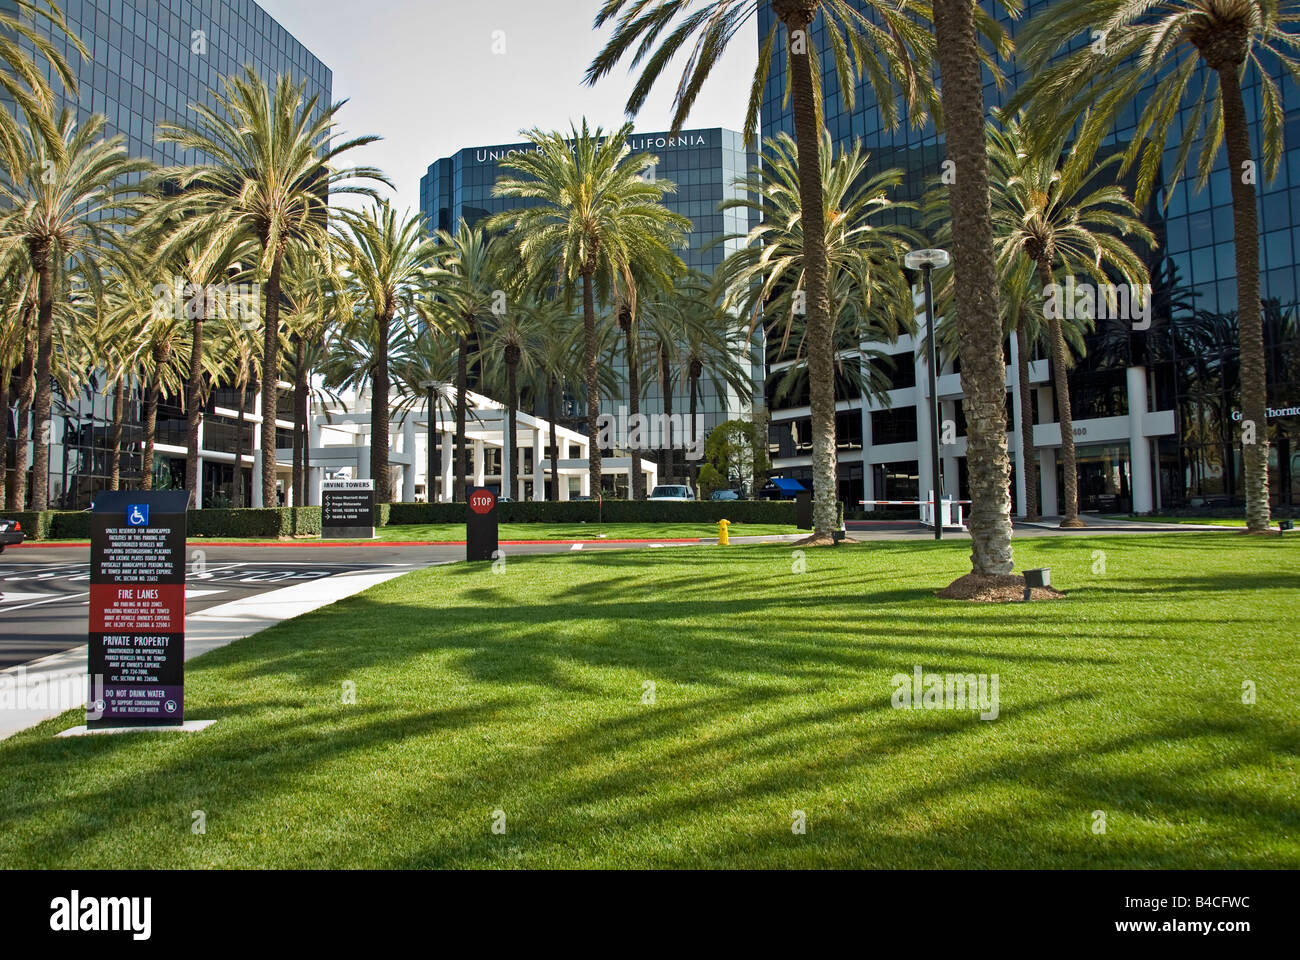 Irvine Towers Newport Beach California four granite and glass office tower building exteriors Landscaped grounds - Stock Image